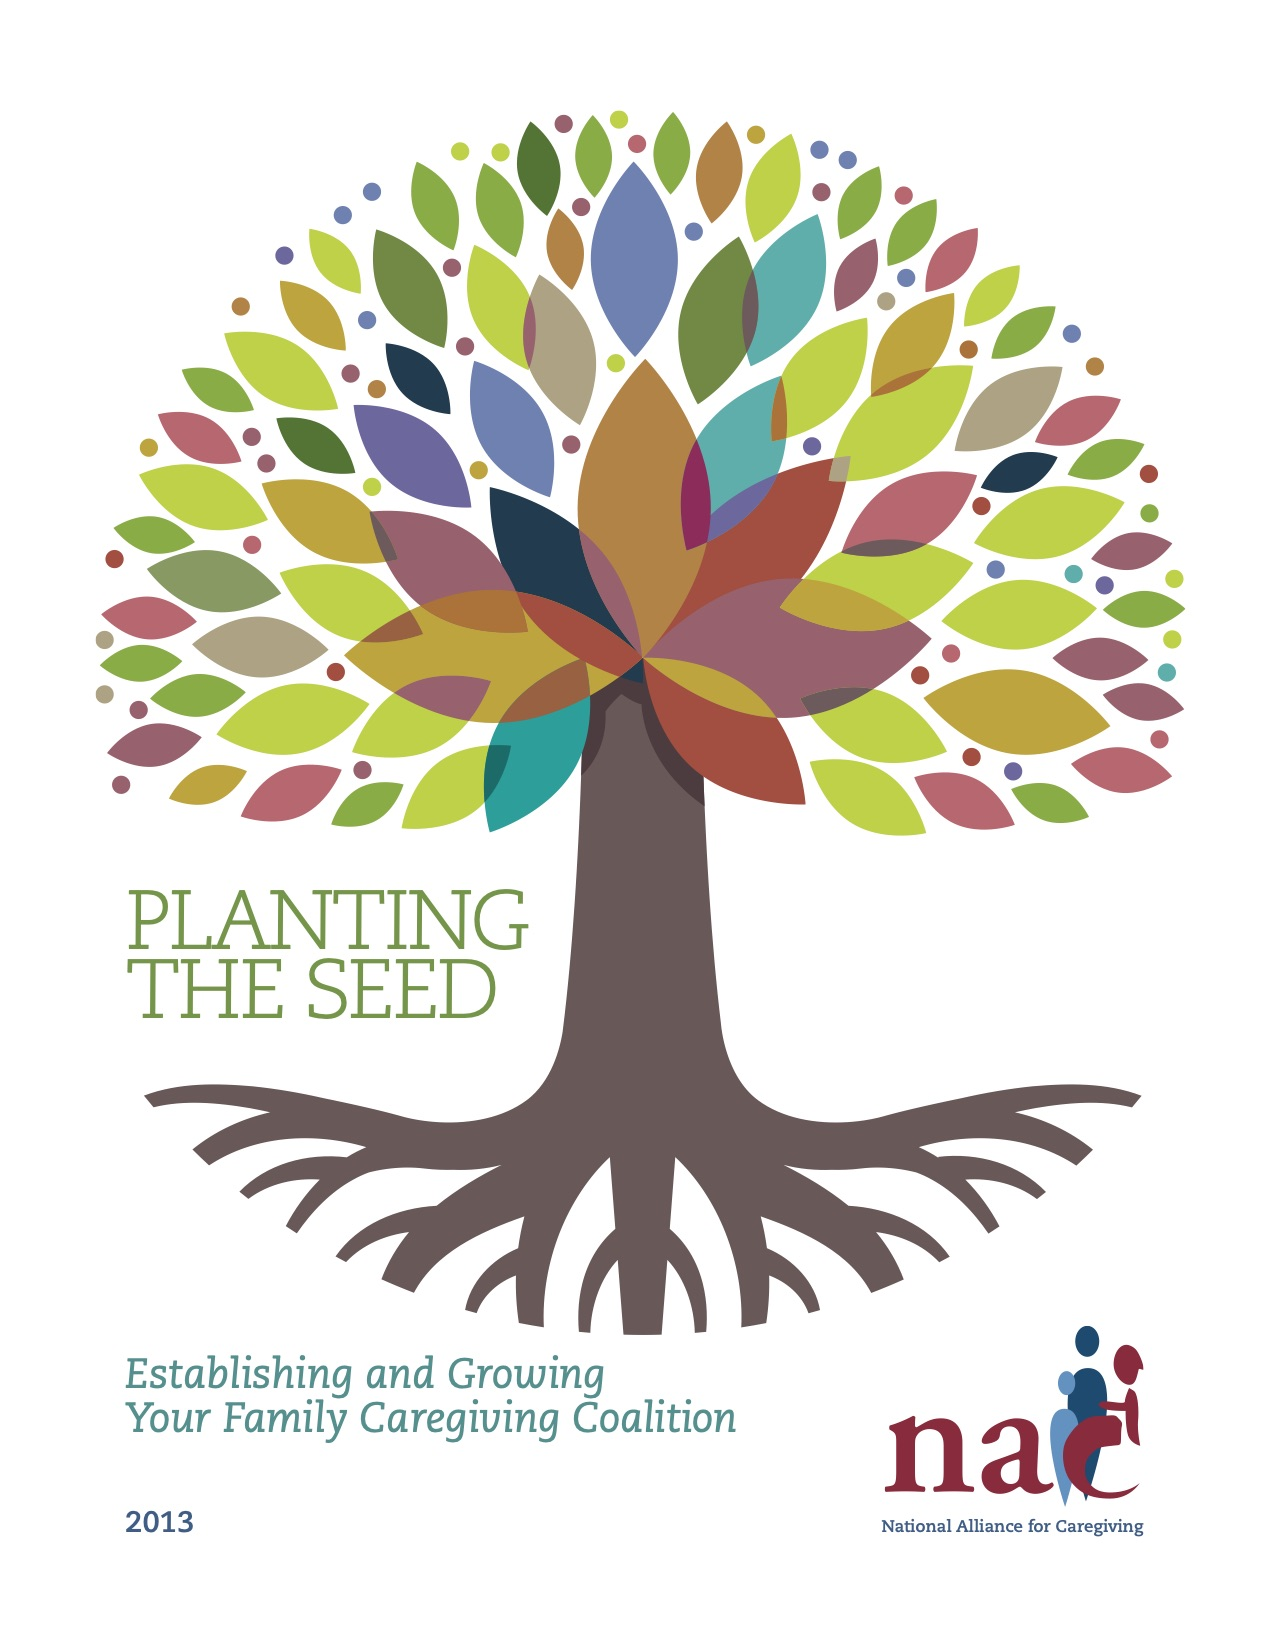 Planting the Seed Cover Image by the National Alliance for Caregiving